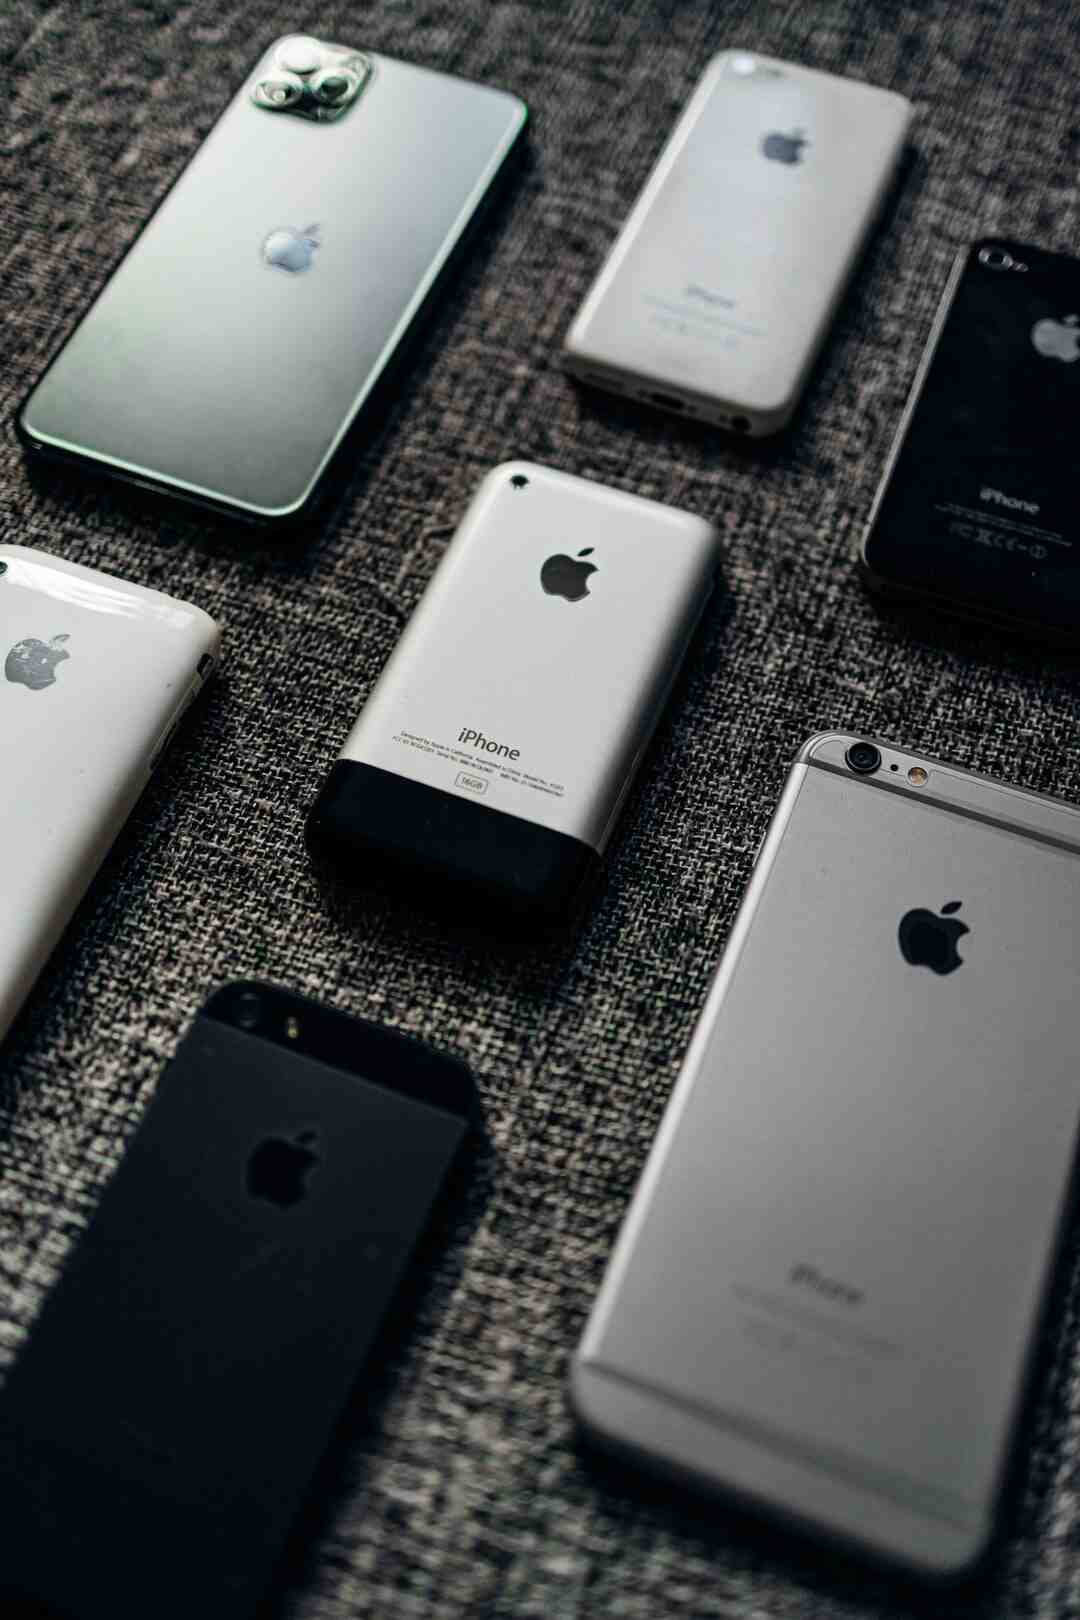 Does Apple still sell iPhone 7 Plus?